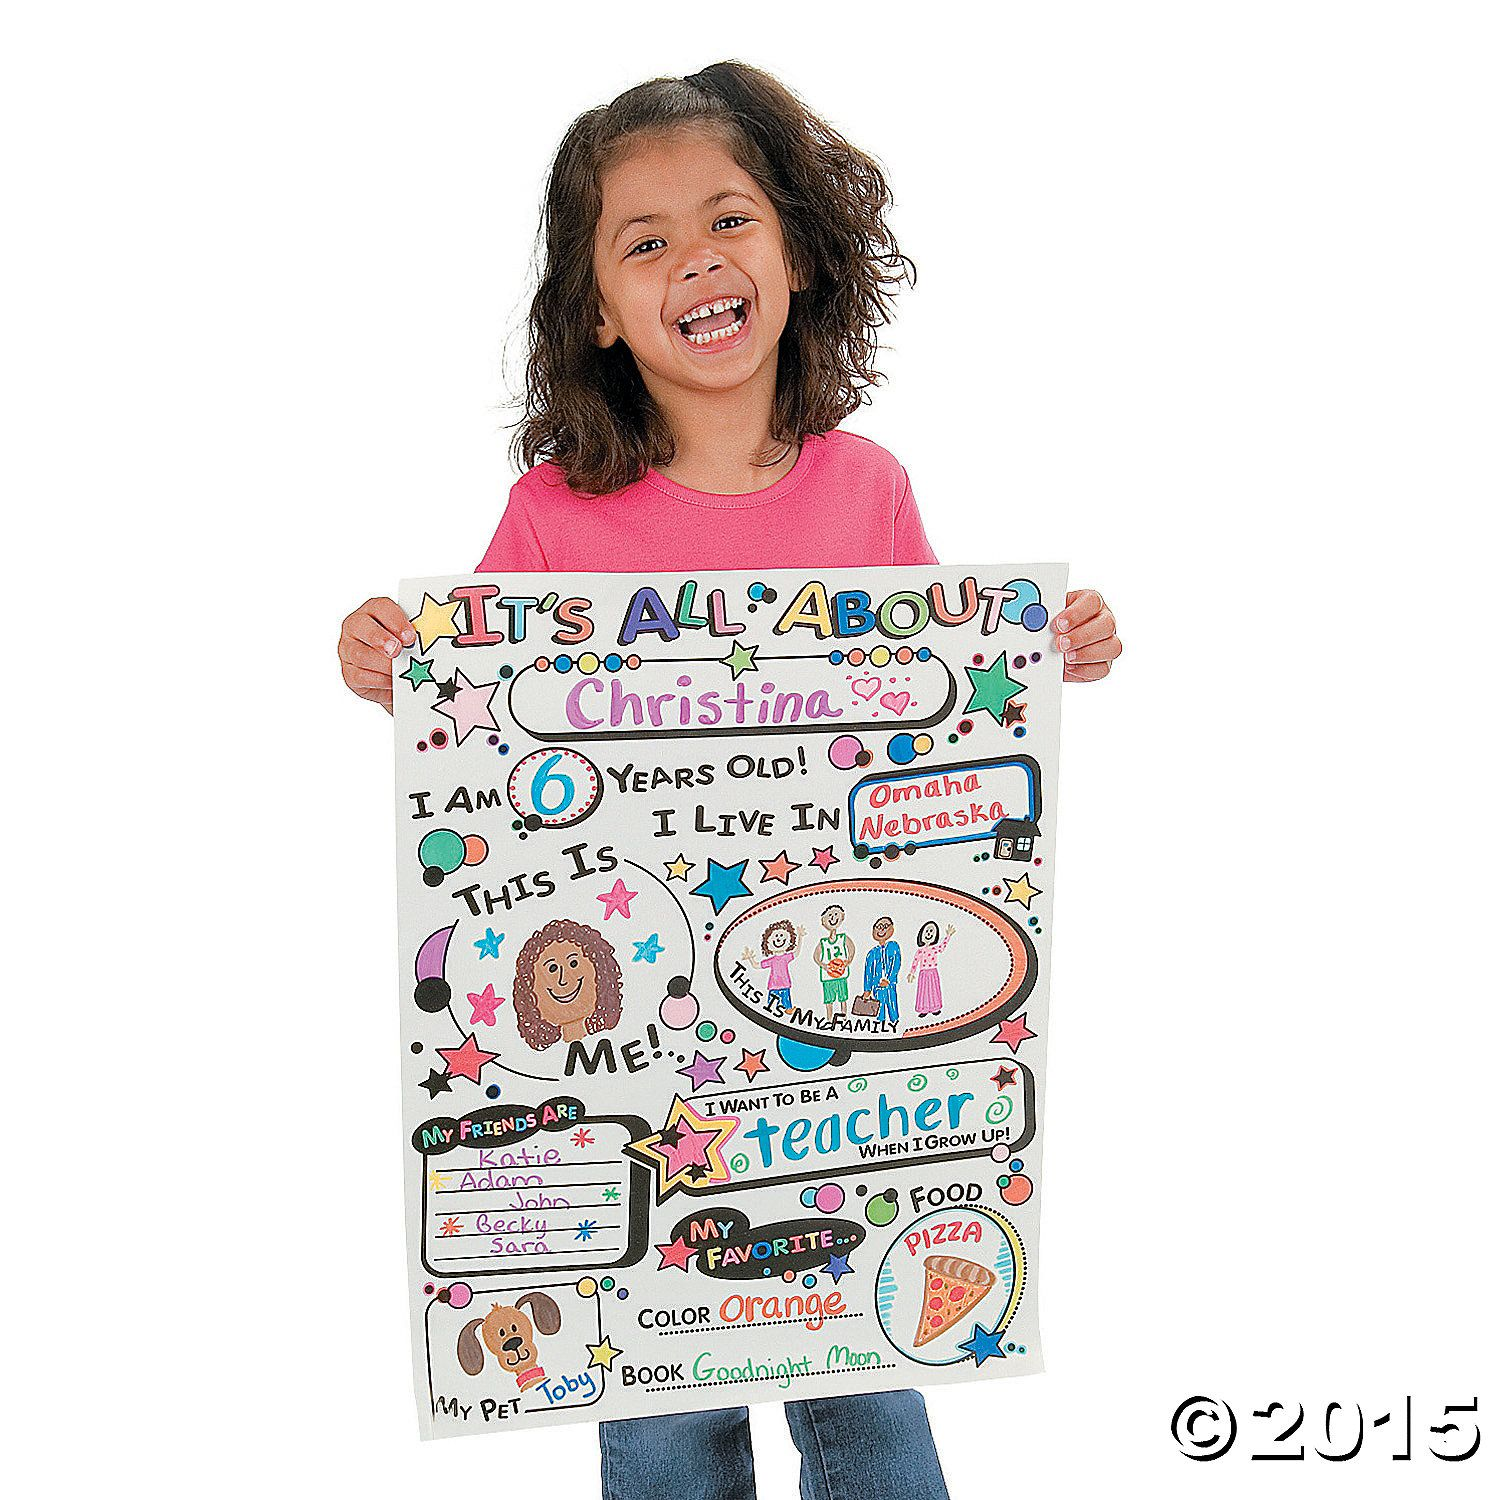 These Color Your Own All About Me Posters Are Great For